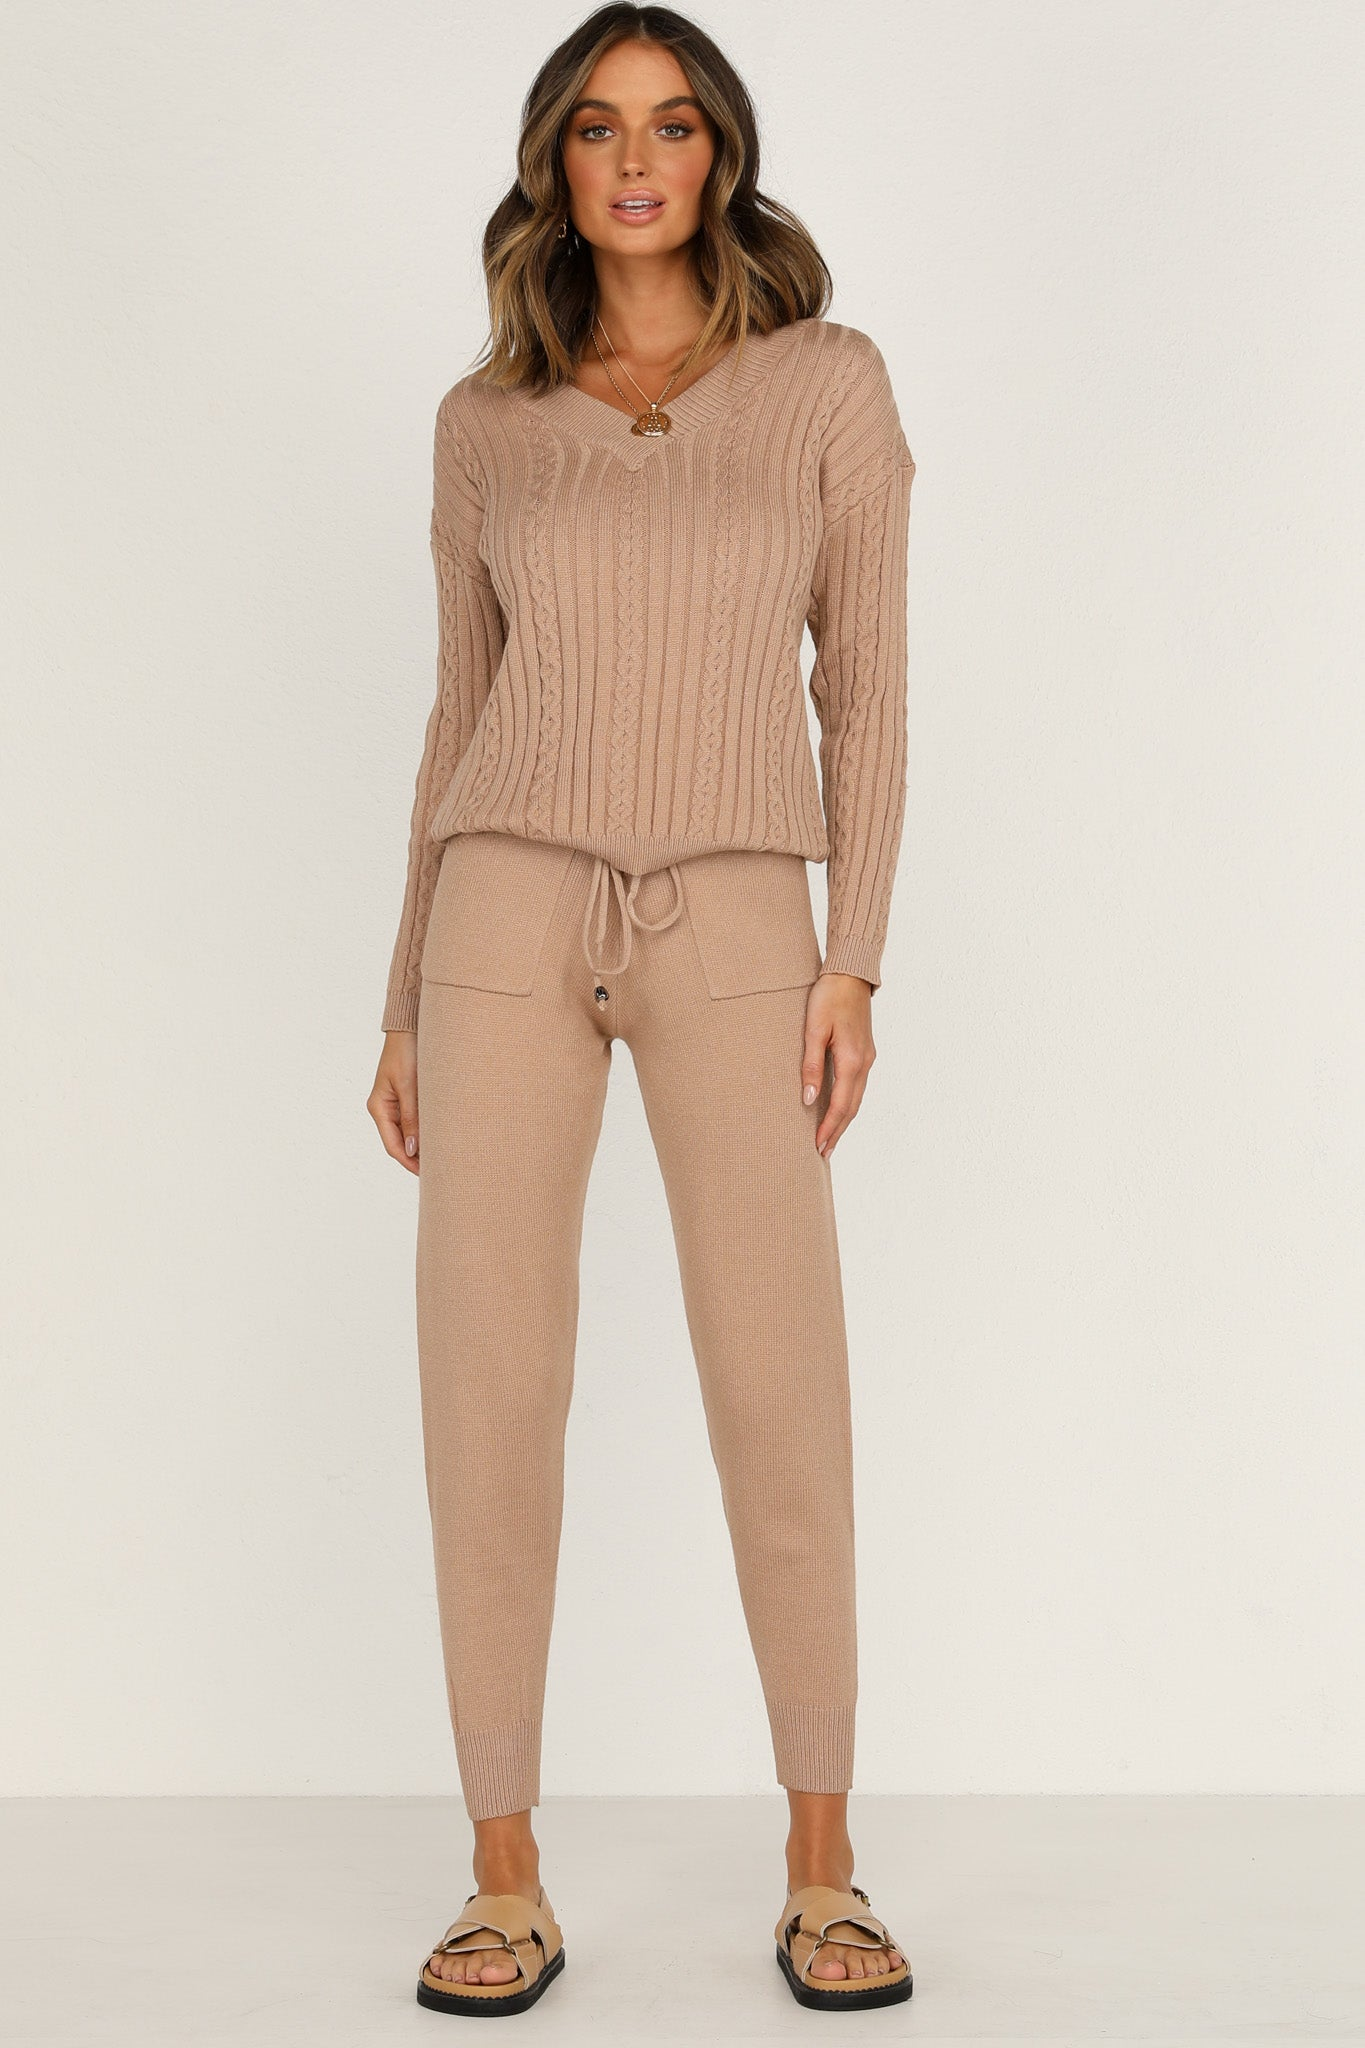 Delia Knit Top (Tan)